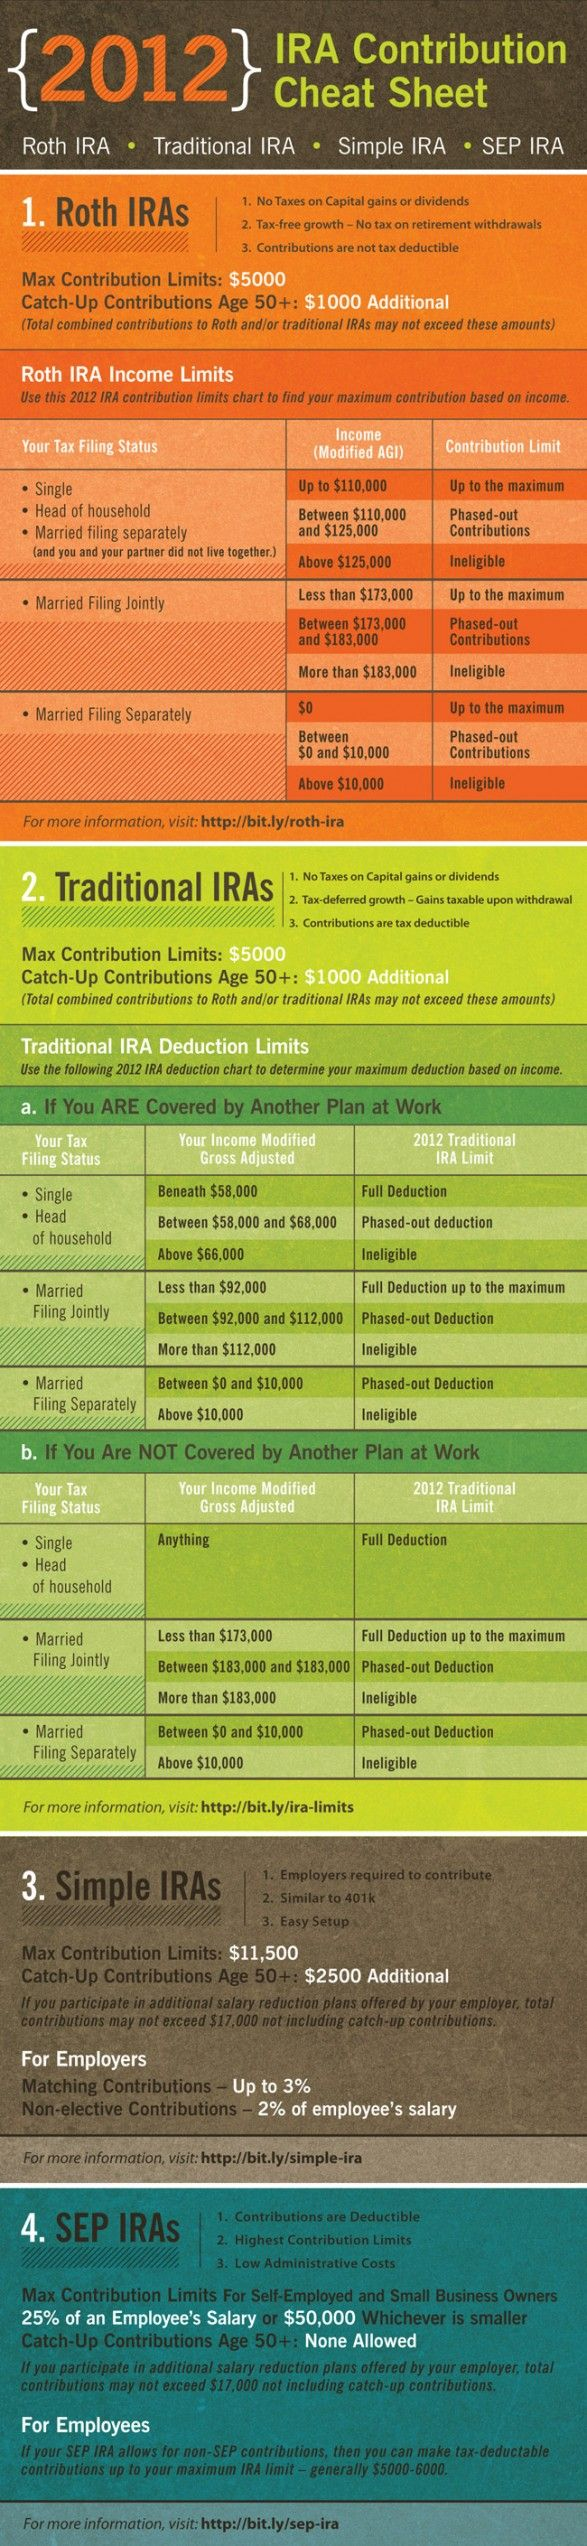 Great Infographic explaining all about IRA Contributions!